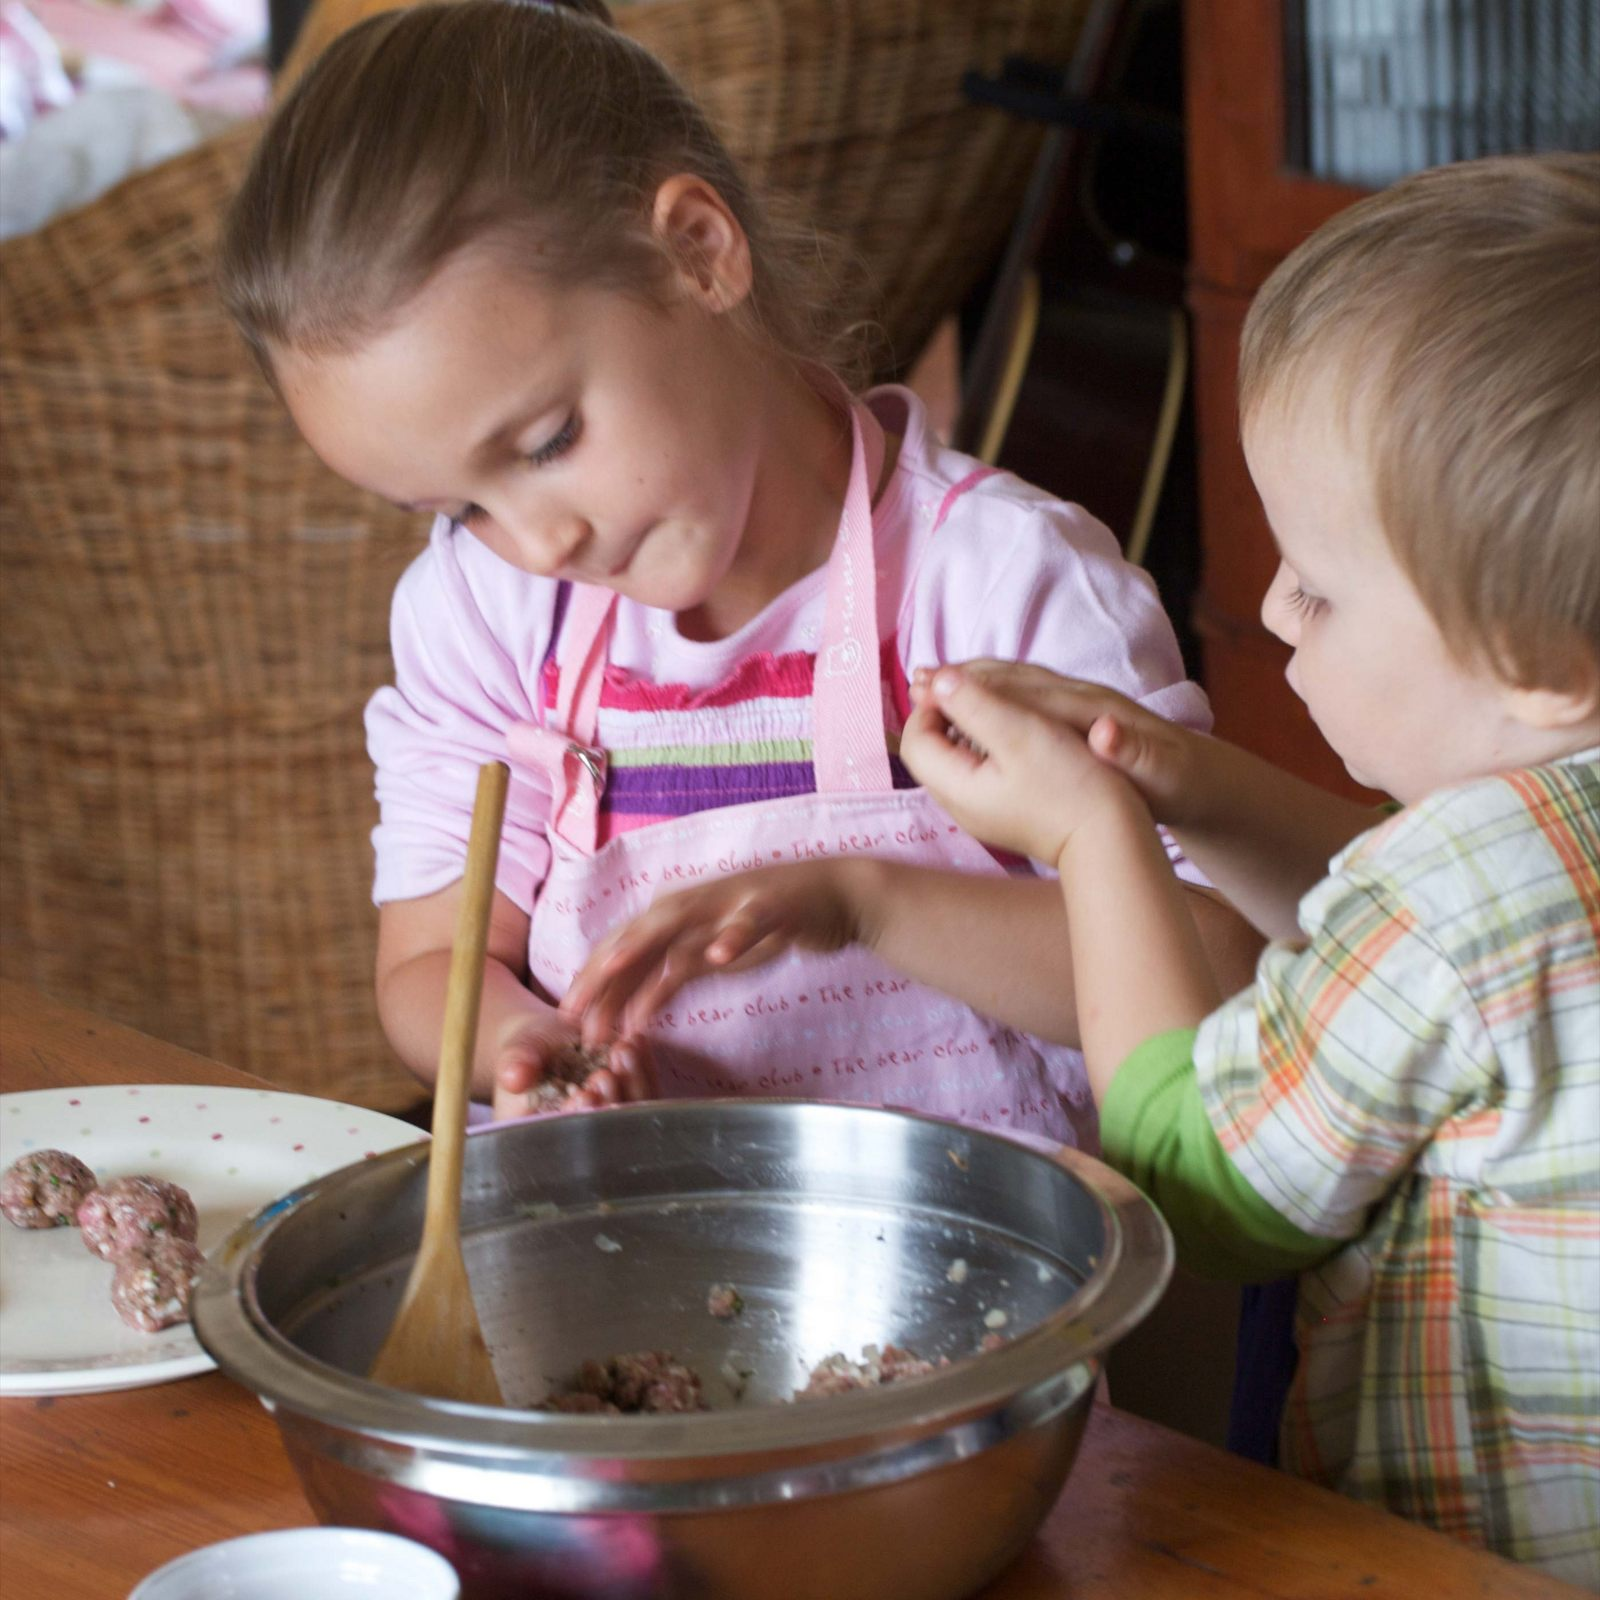 Kids making meatballs with tomato sauce